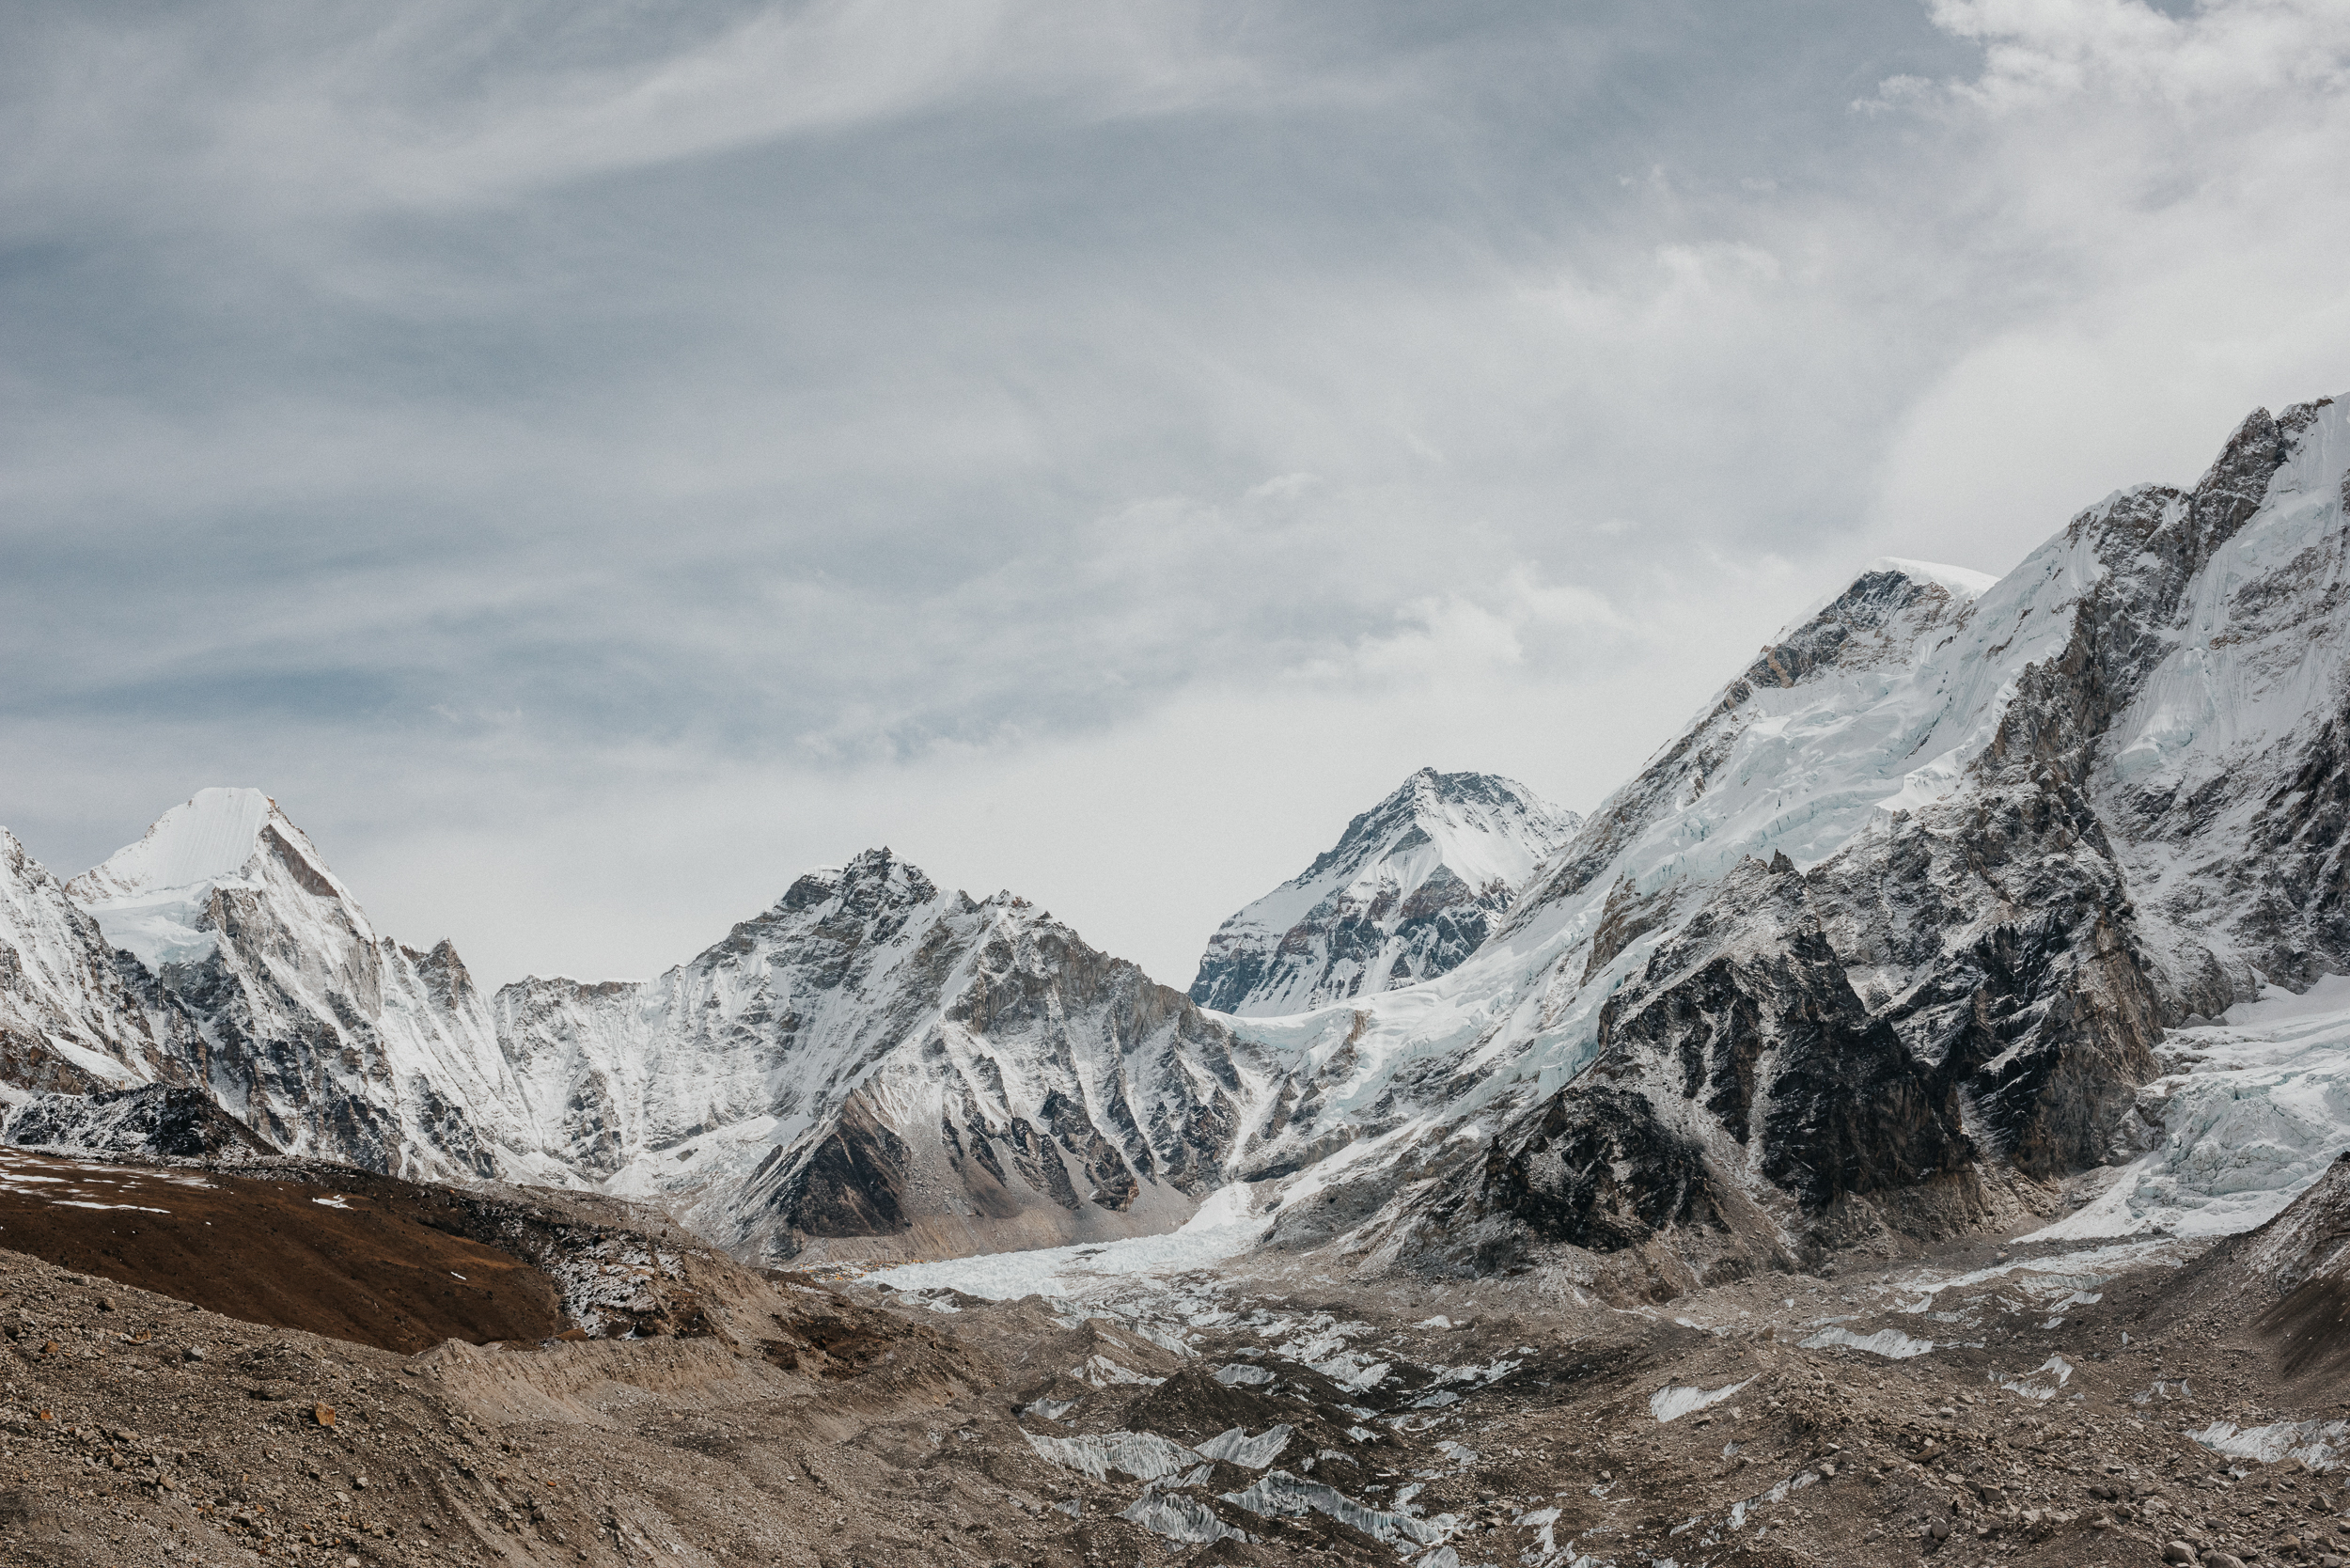 Nepal_EverestBaseCamp_2019_TaraShupe_Photography_DSC_4170.jpg